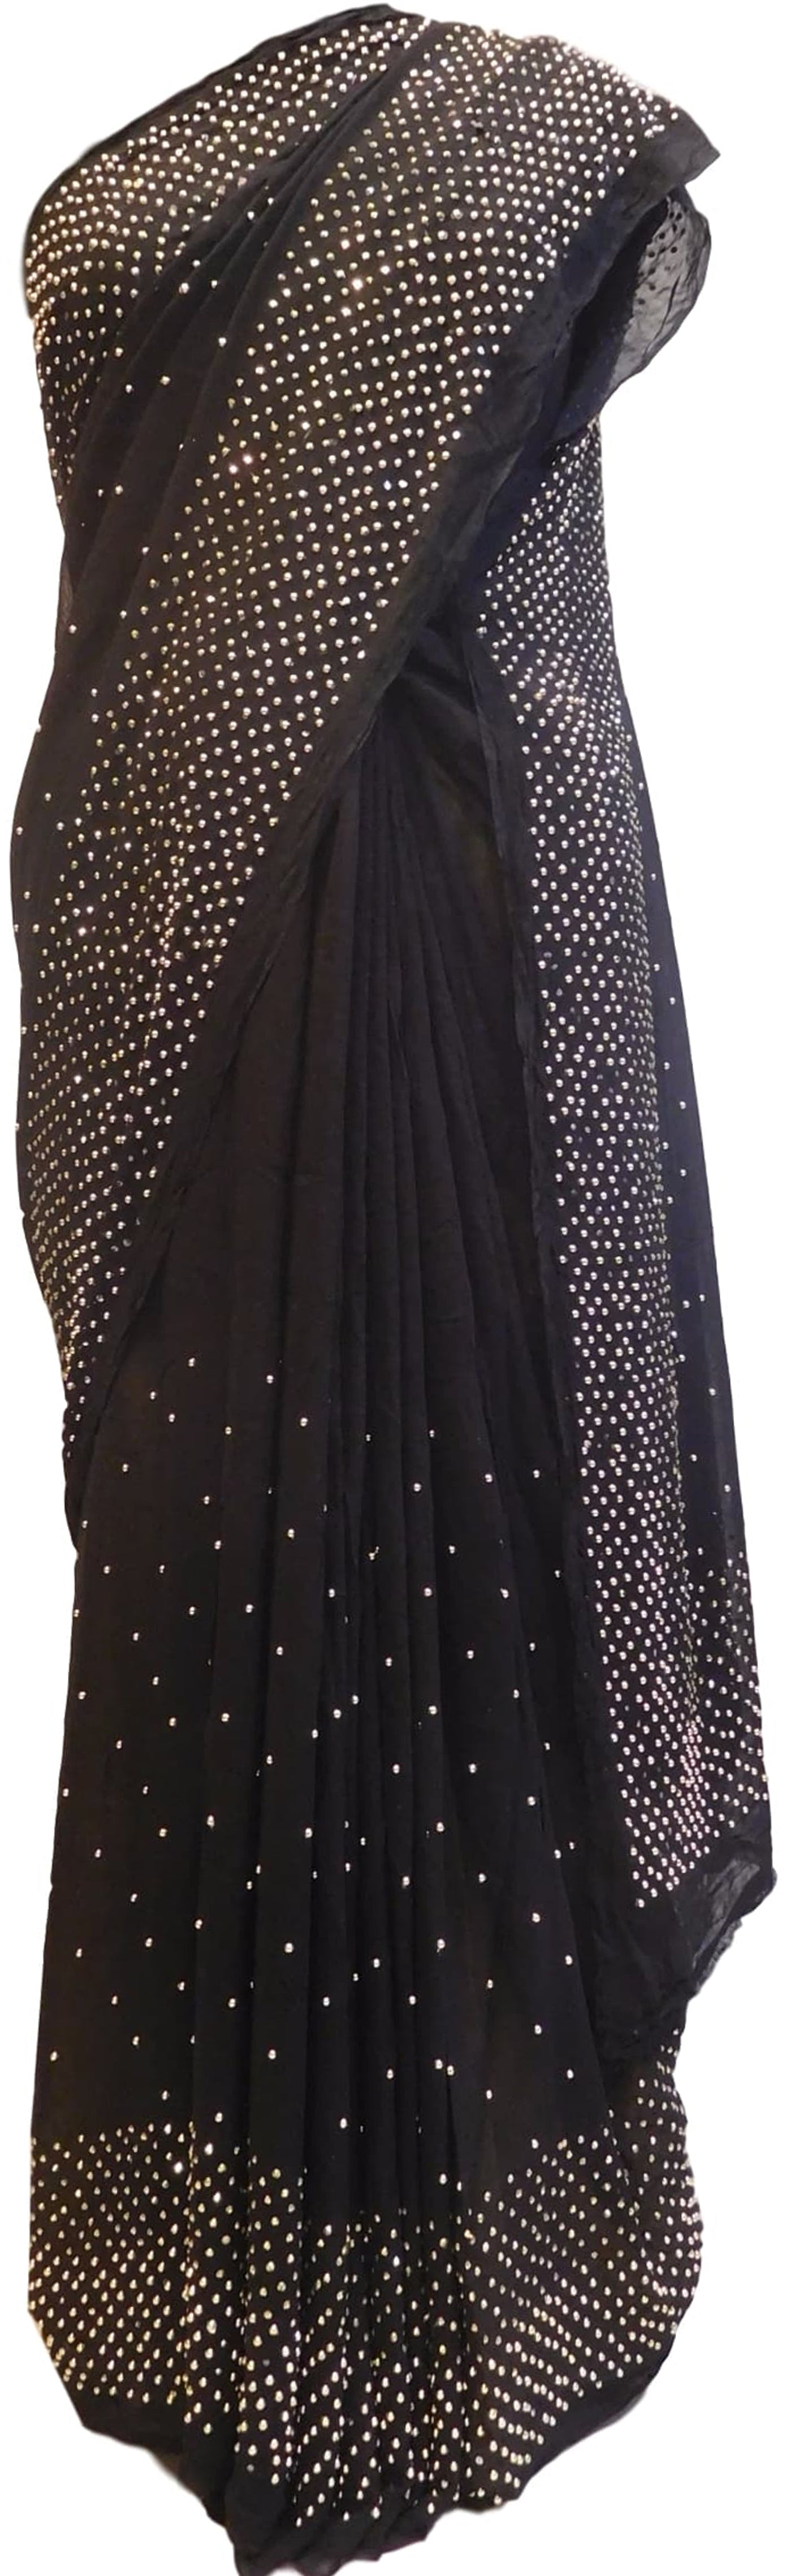 Black Designer Georgette (Viscos) Hand Embroidery Stone Work Saree Sari